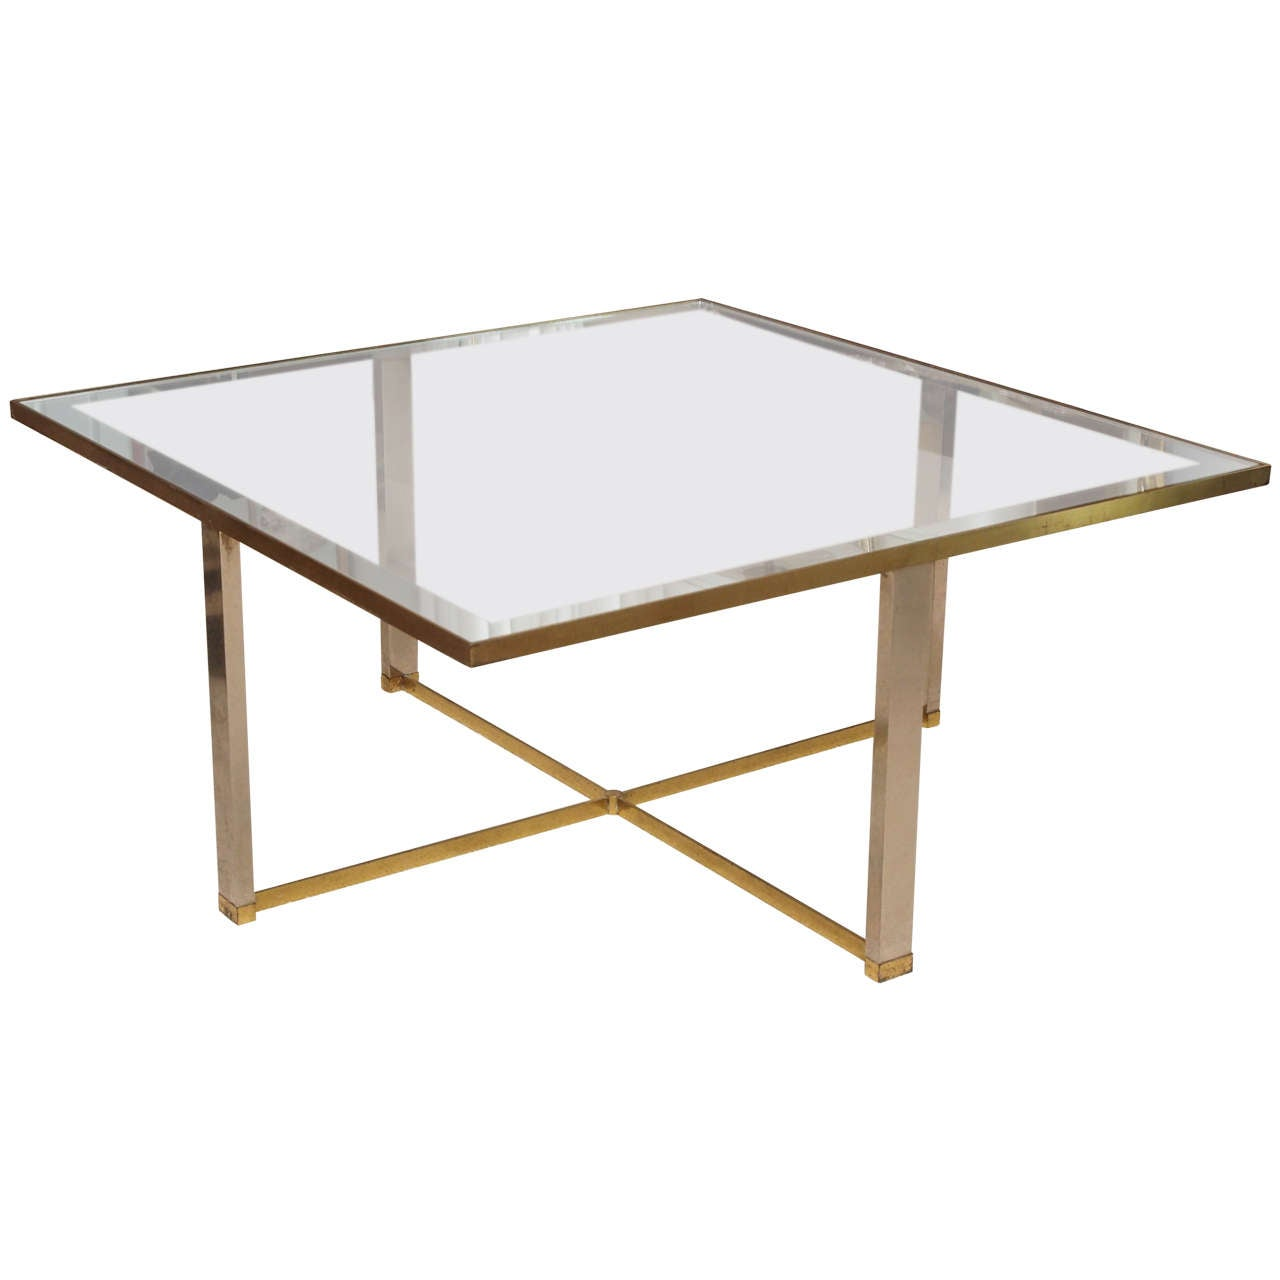 Minimalist cocktail table in brass and glass at 1stdibs for Designer cocktail tables glass